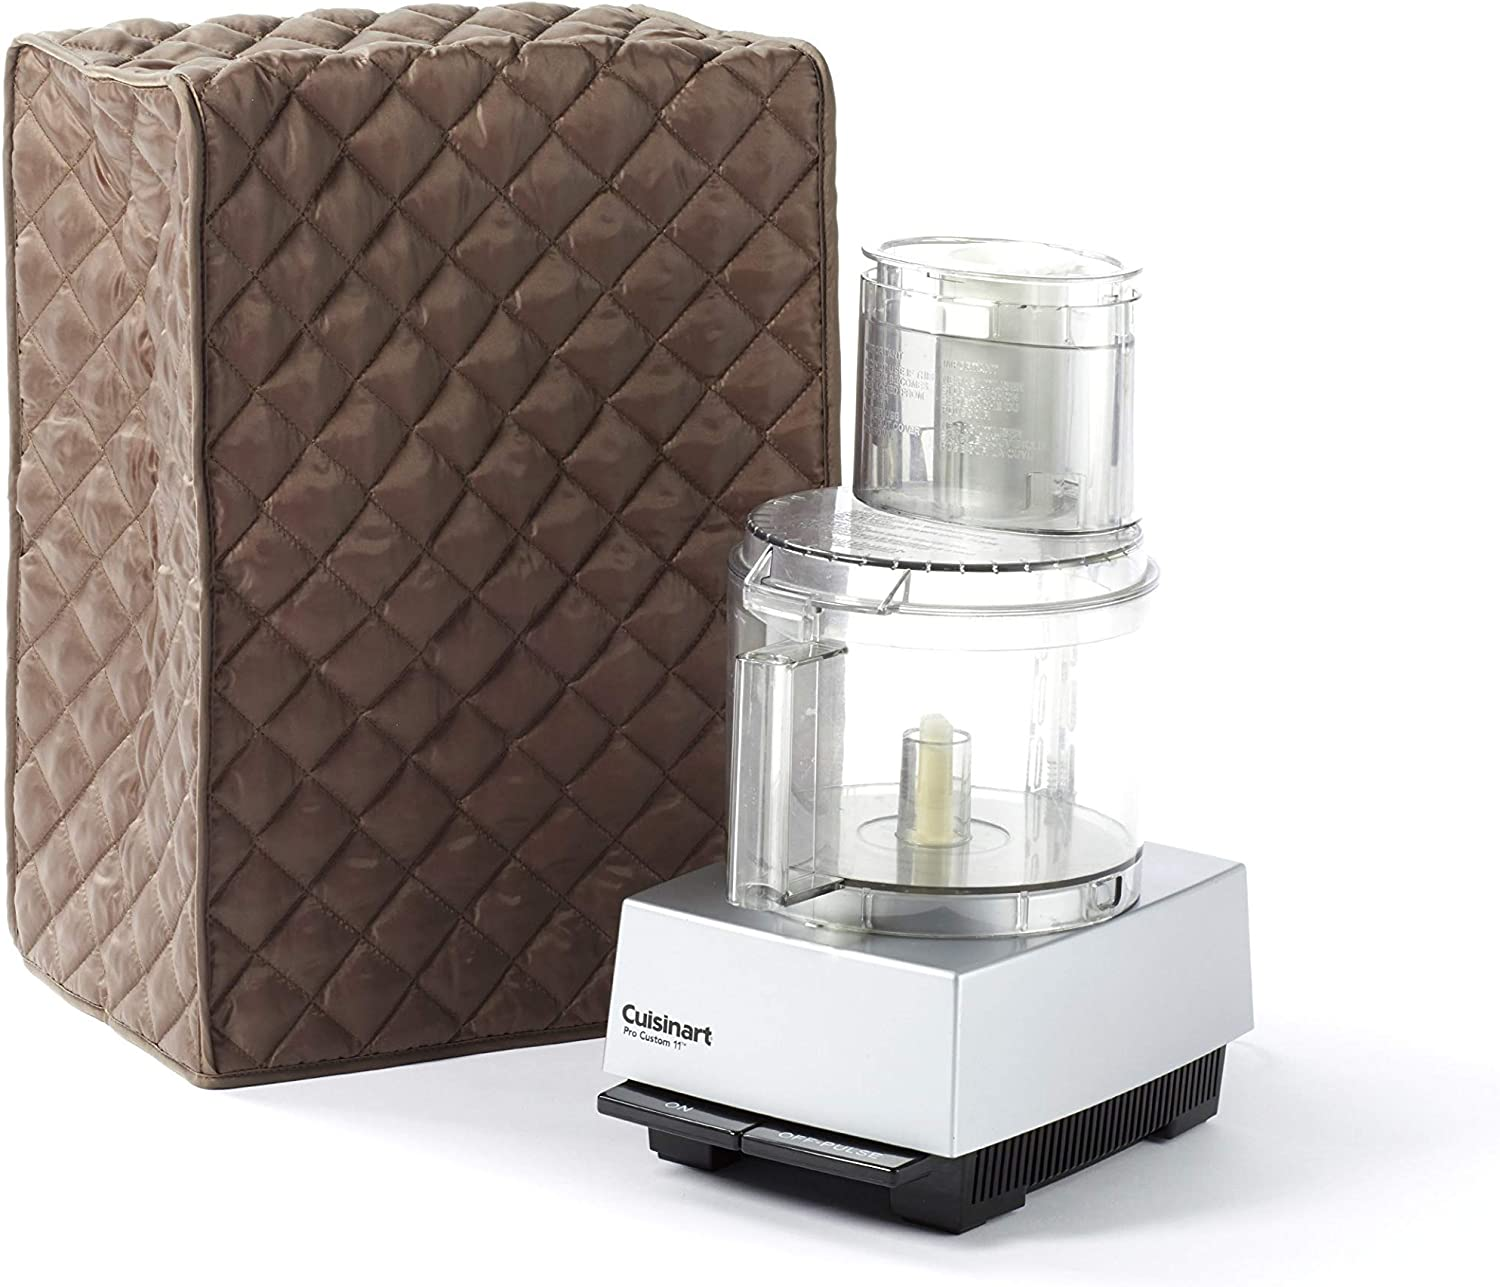 Covermates Food Processor Cover 11W x 9D x 15H Diamond Collection 2 YR Warranty Year Around Protection – Bronze